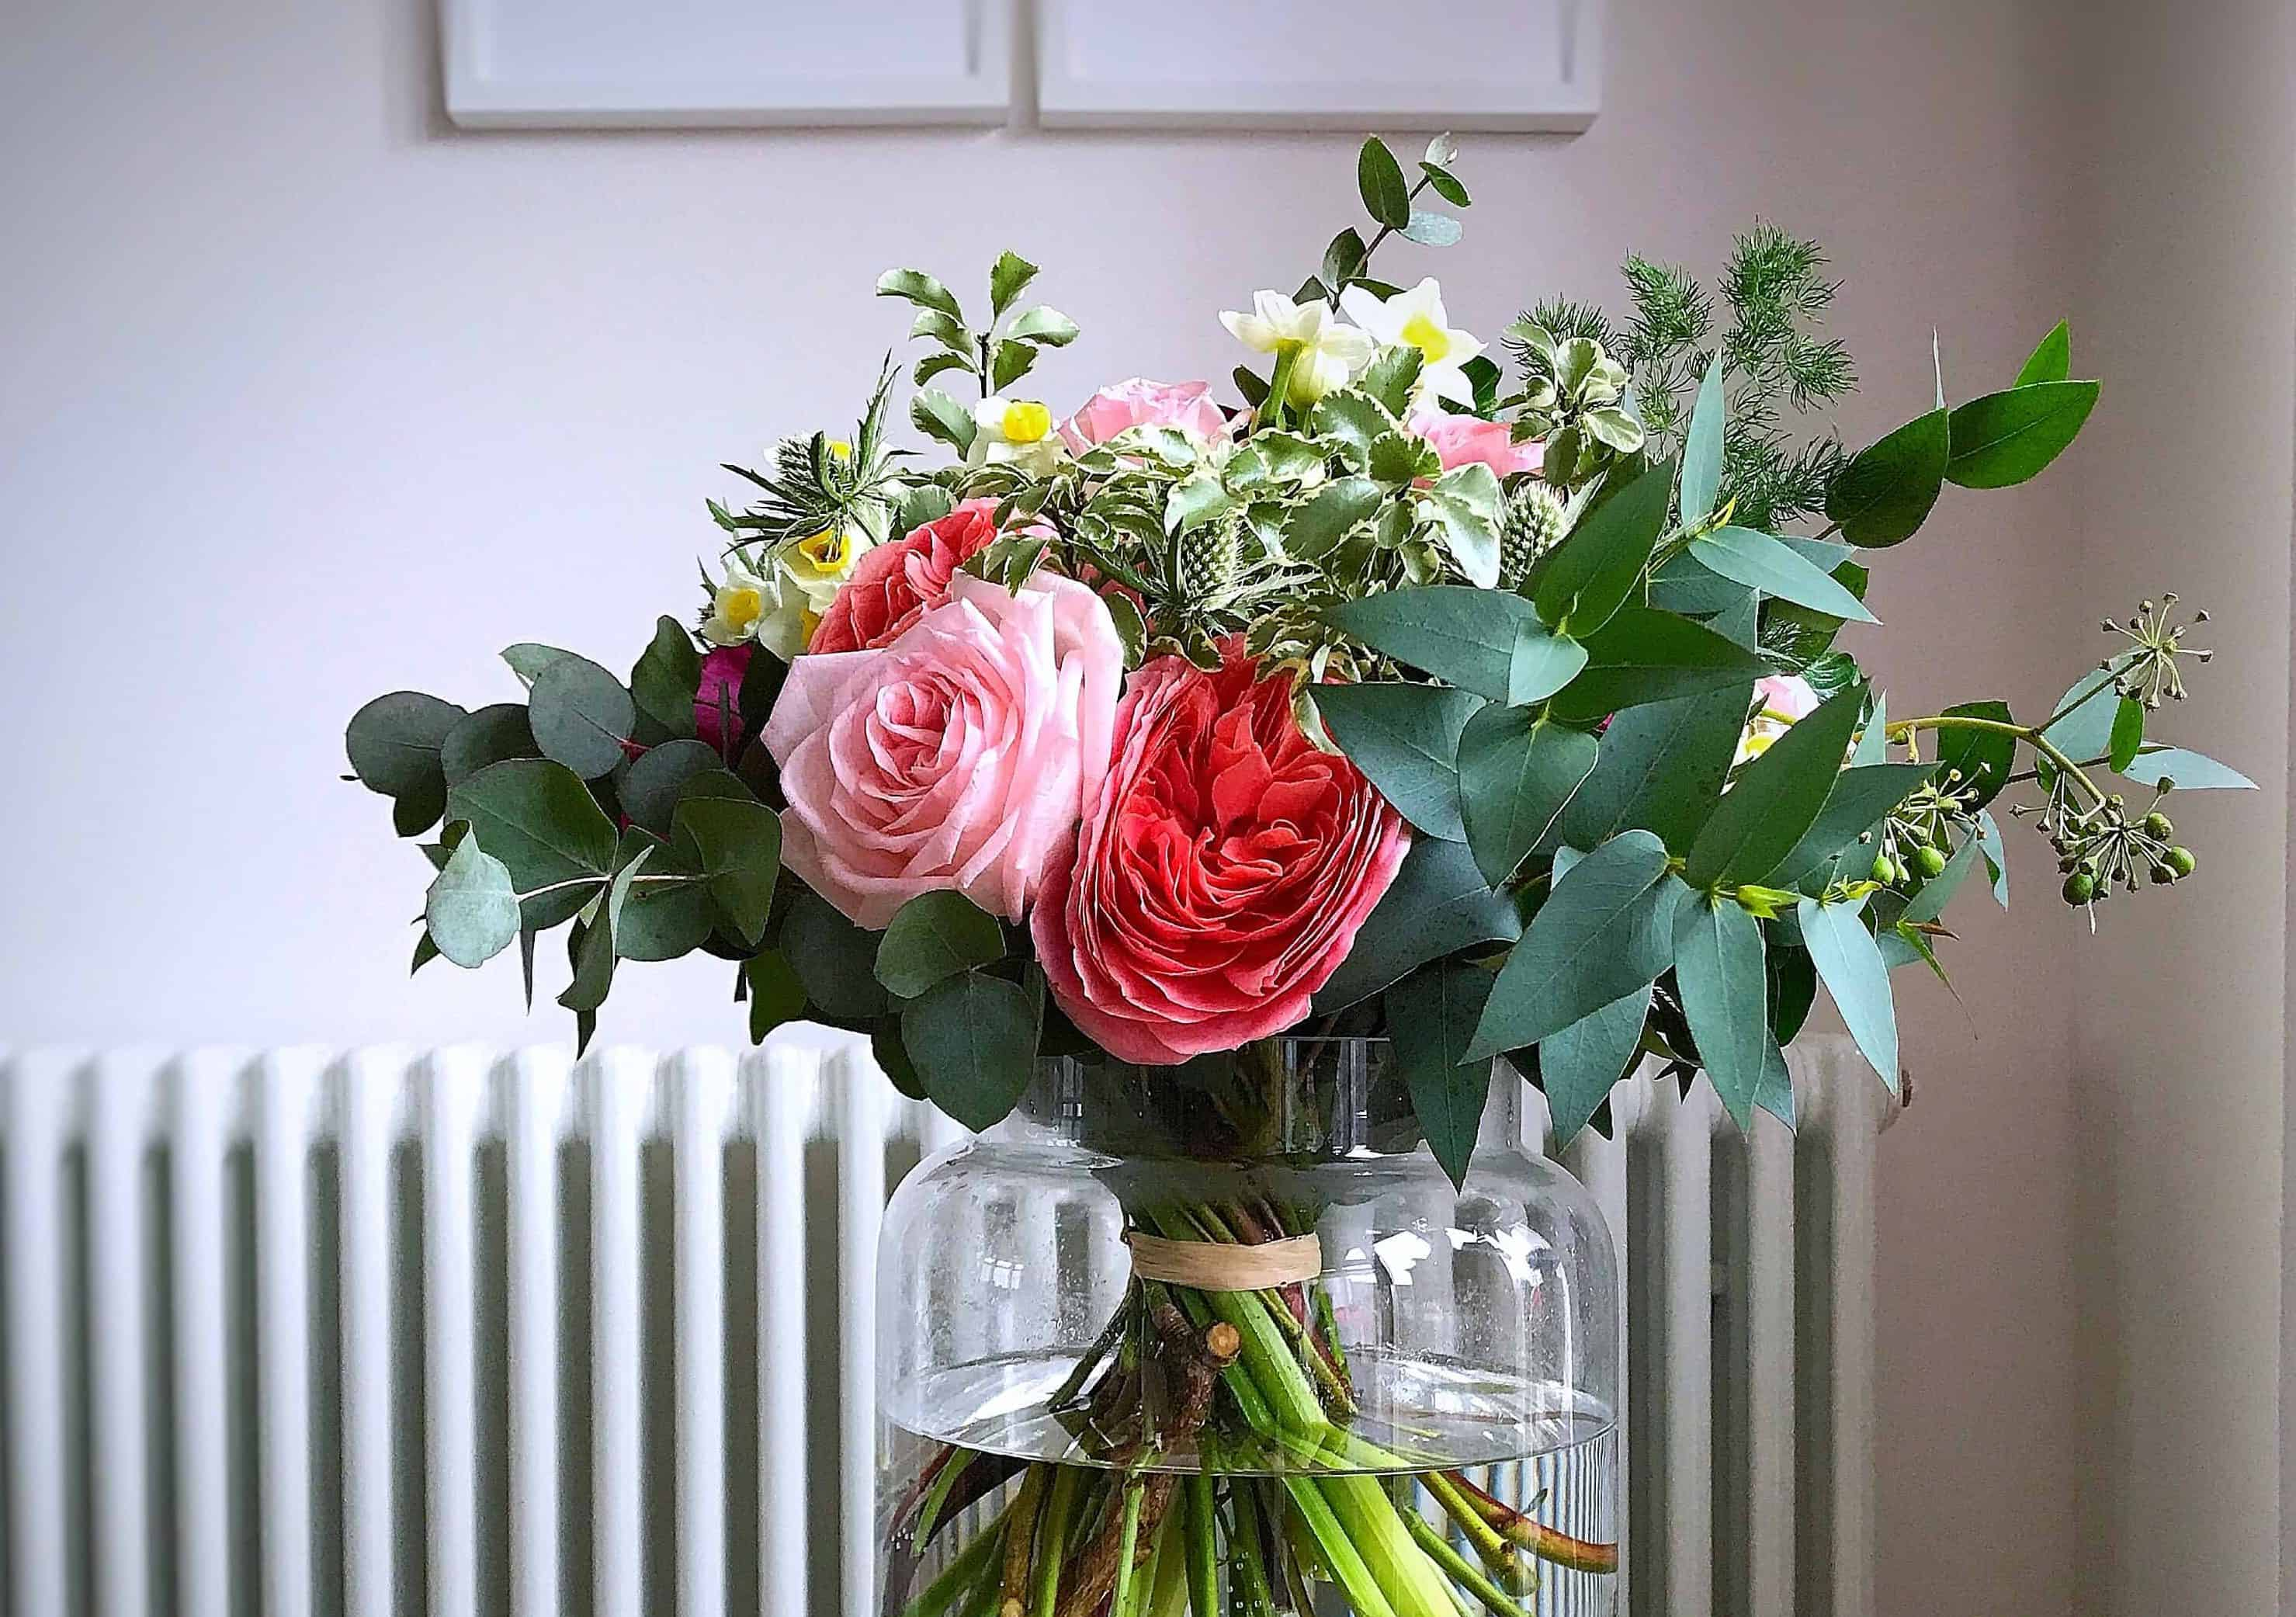 A beautiful bouquet of sustainable flowers for Mother's Day